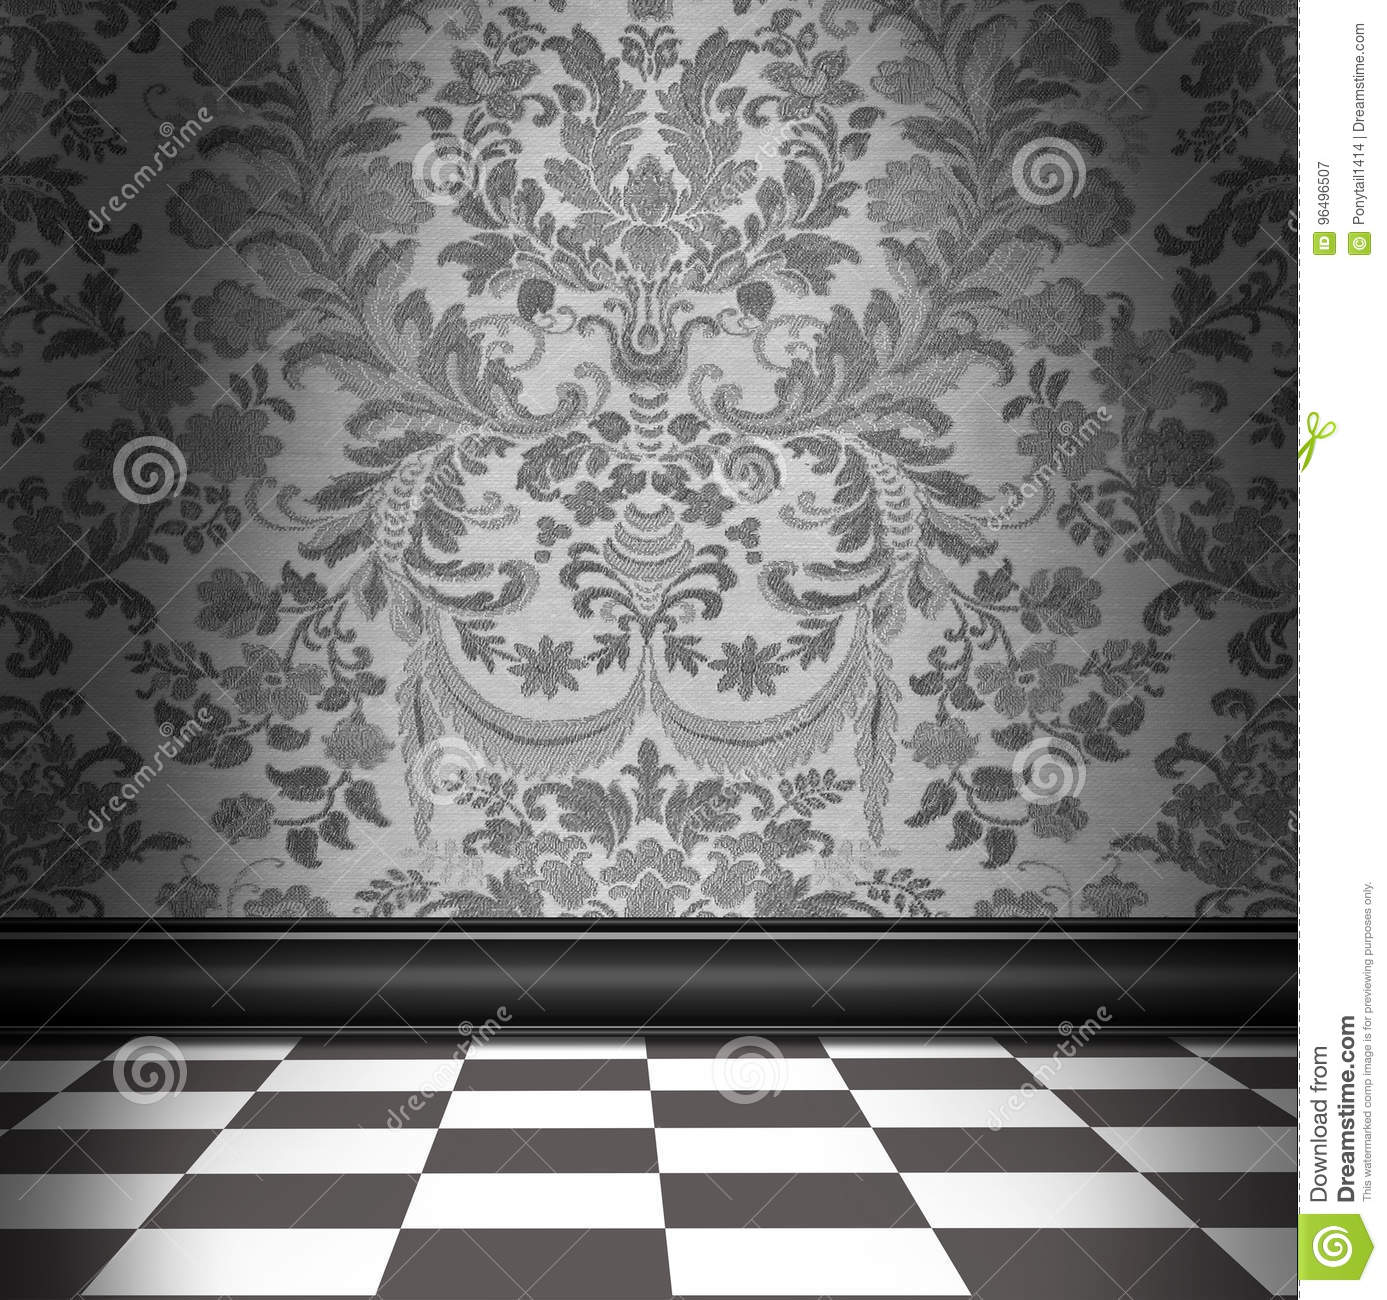 Gray Damask Wallpaper With Gray & White Checkerboard Tile Floor